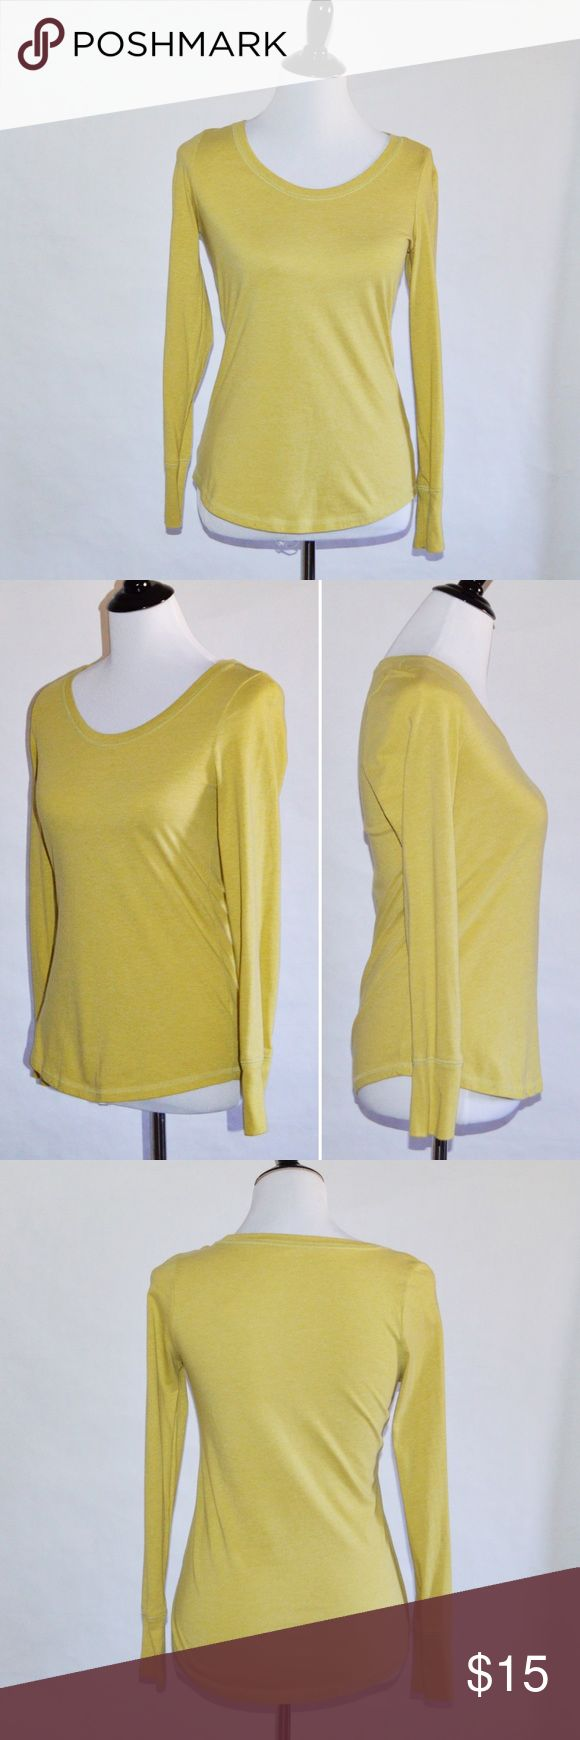 "Yellow Long Sleeves Top Yellow Long Sleeves Top 60% Cotton / 40% Polyester  Good condition. Worn a few times. Love the color.   Measurements Medium-Chest:17"" across / 34"" around, Length:24"", Sleeve Length:23.5""  🔆Bundle 2 items = 10% OFF 🔆Bundle 3 or more = MAKE OFFER ❌ No Trades Mossimo Supply Co. Tops Tees - Long Sleeve"